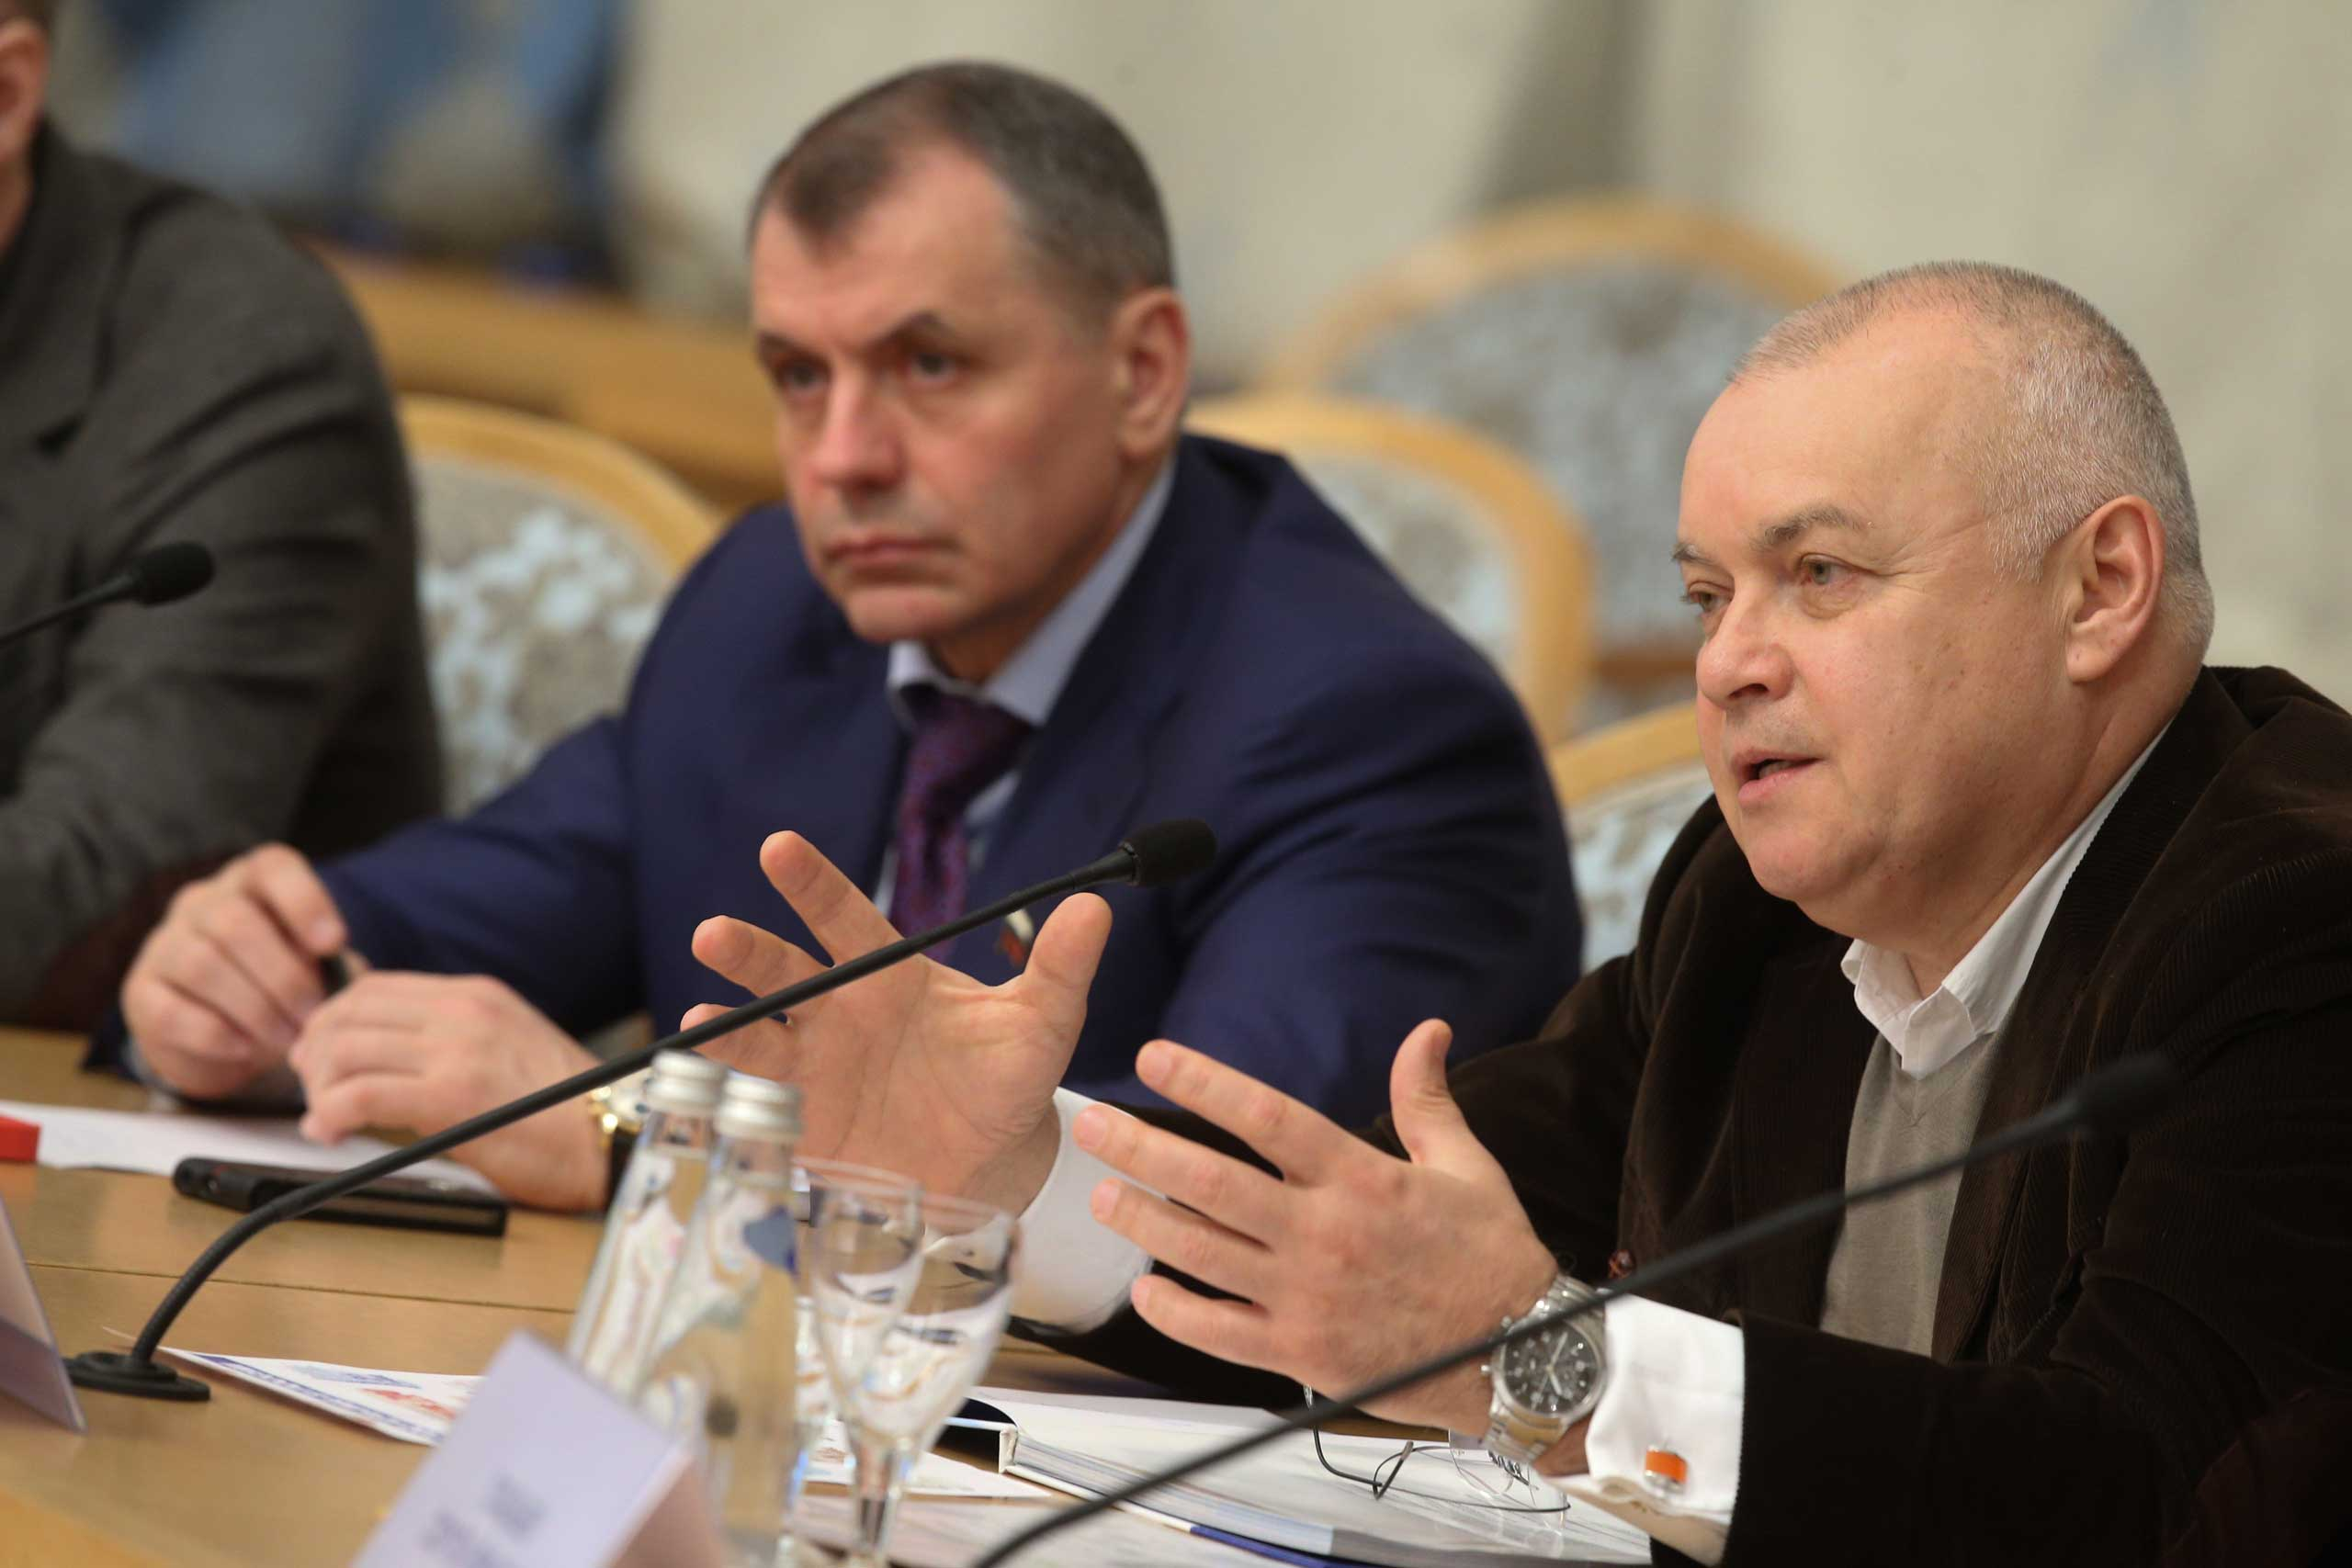 Dmitri Kiselyov, who runs the Kremlin's media conglomerate, Rossiya Segodnya, attends a round table discussion dedicated to the first anniversary of the reunification of Crimea with the Russian Federation at Moscow's President Hotel, March 19, 2015.